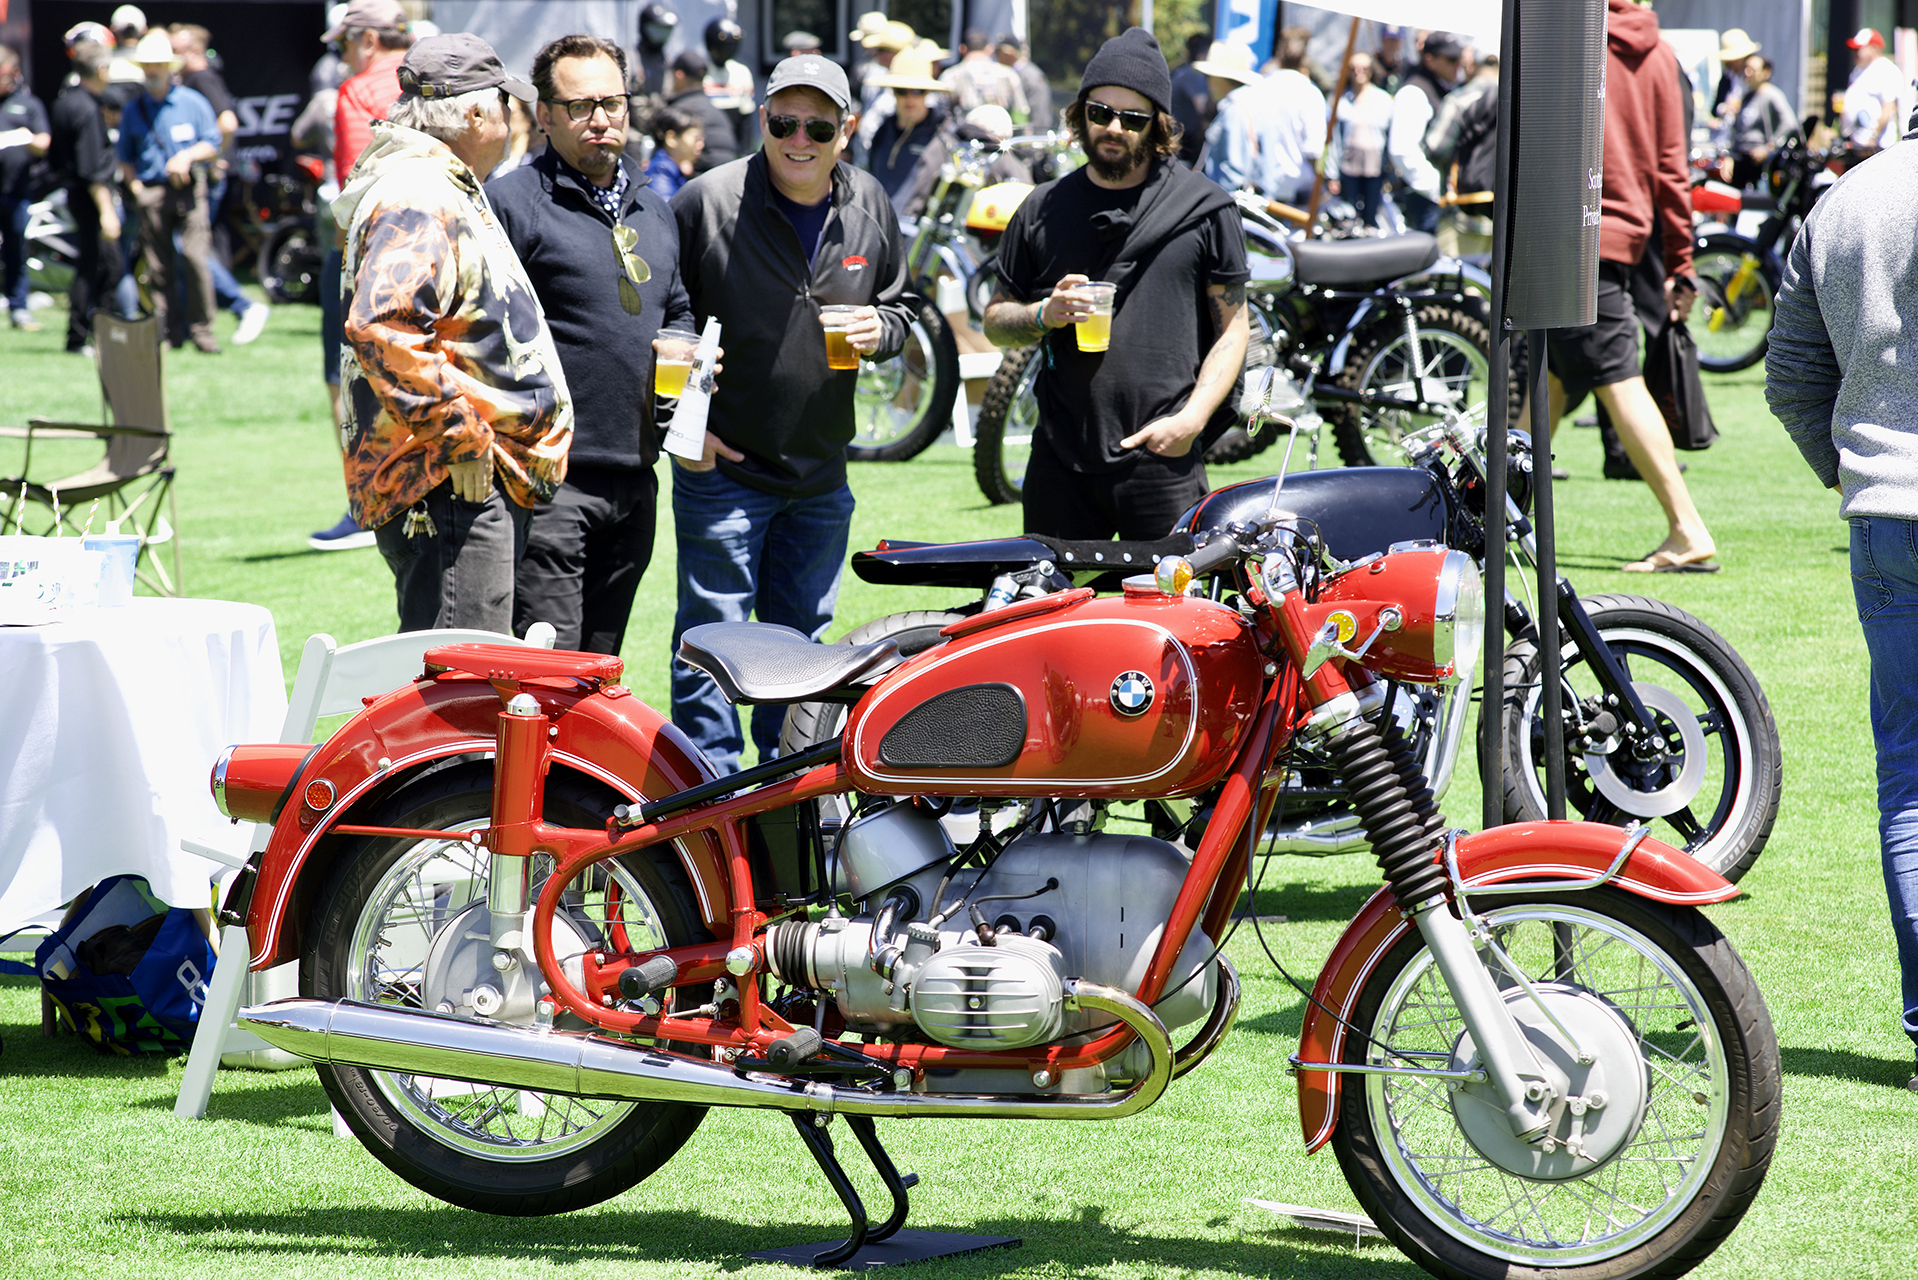 The three Bs: Beers, bikes, buddies…and an unusual red BMW